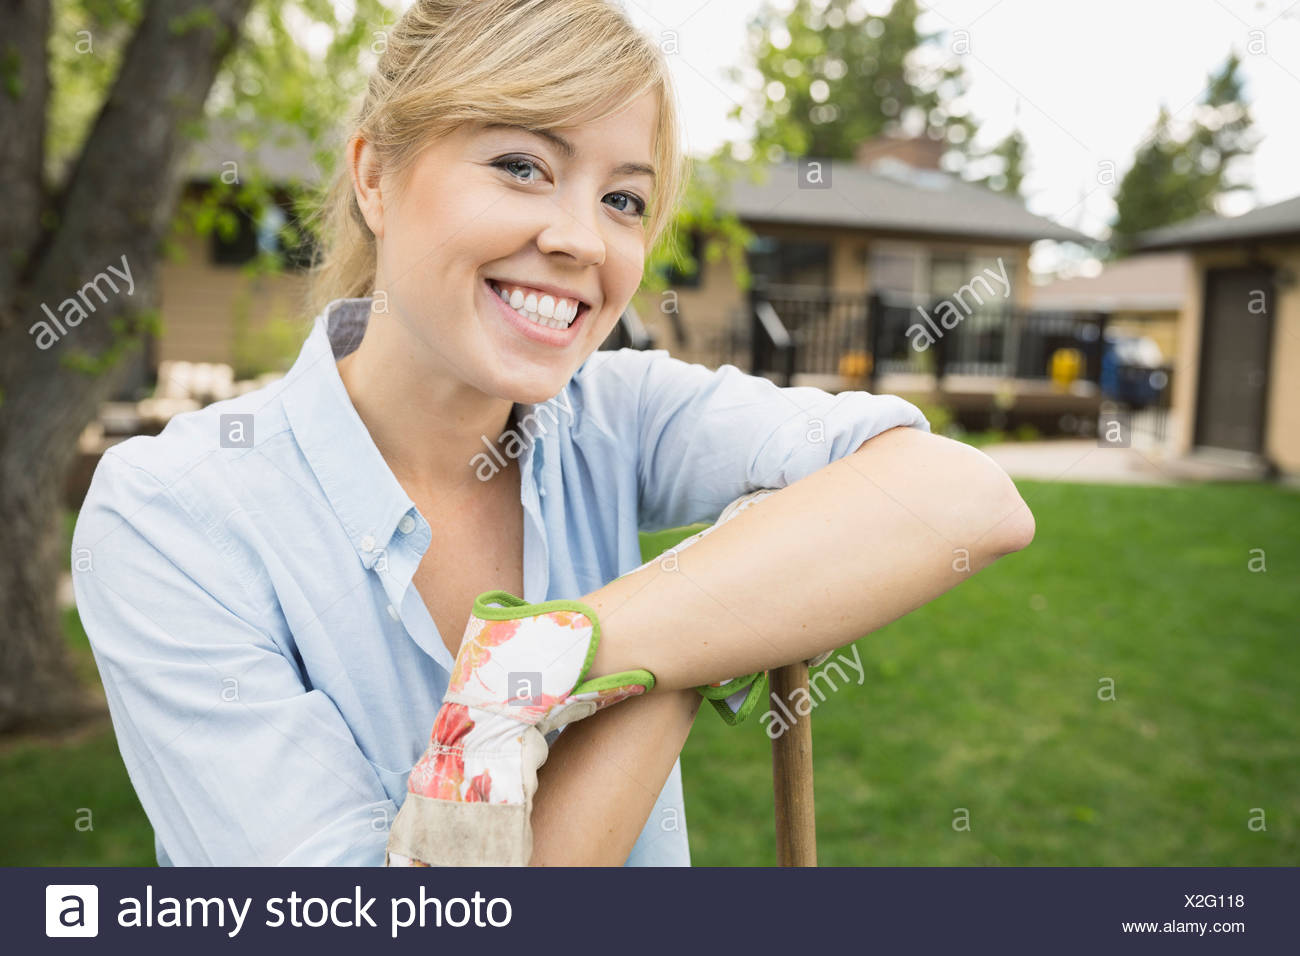 Portrait of smiling woman wearing gardening gloves - Stock Image